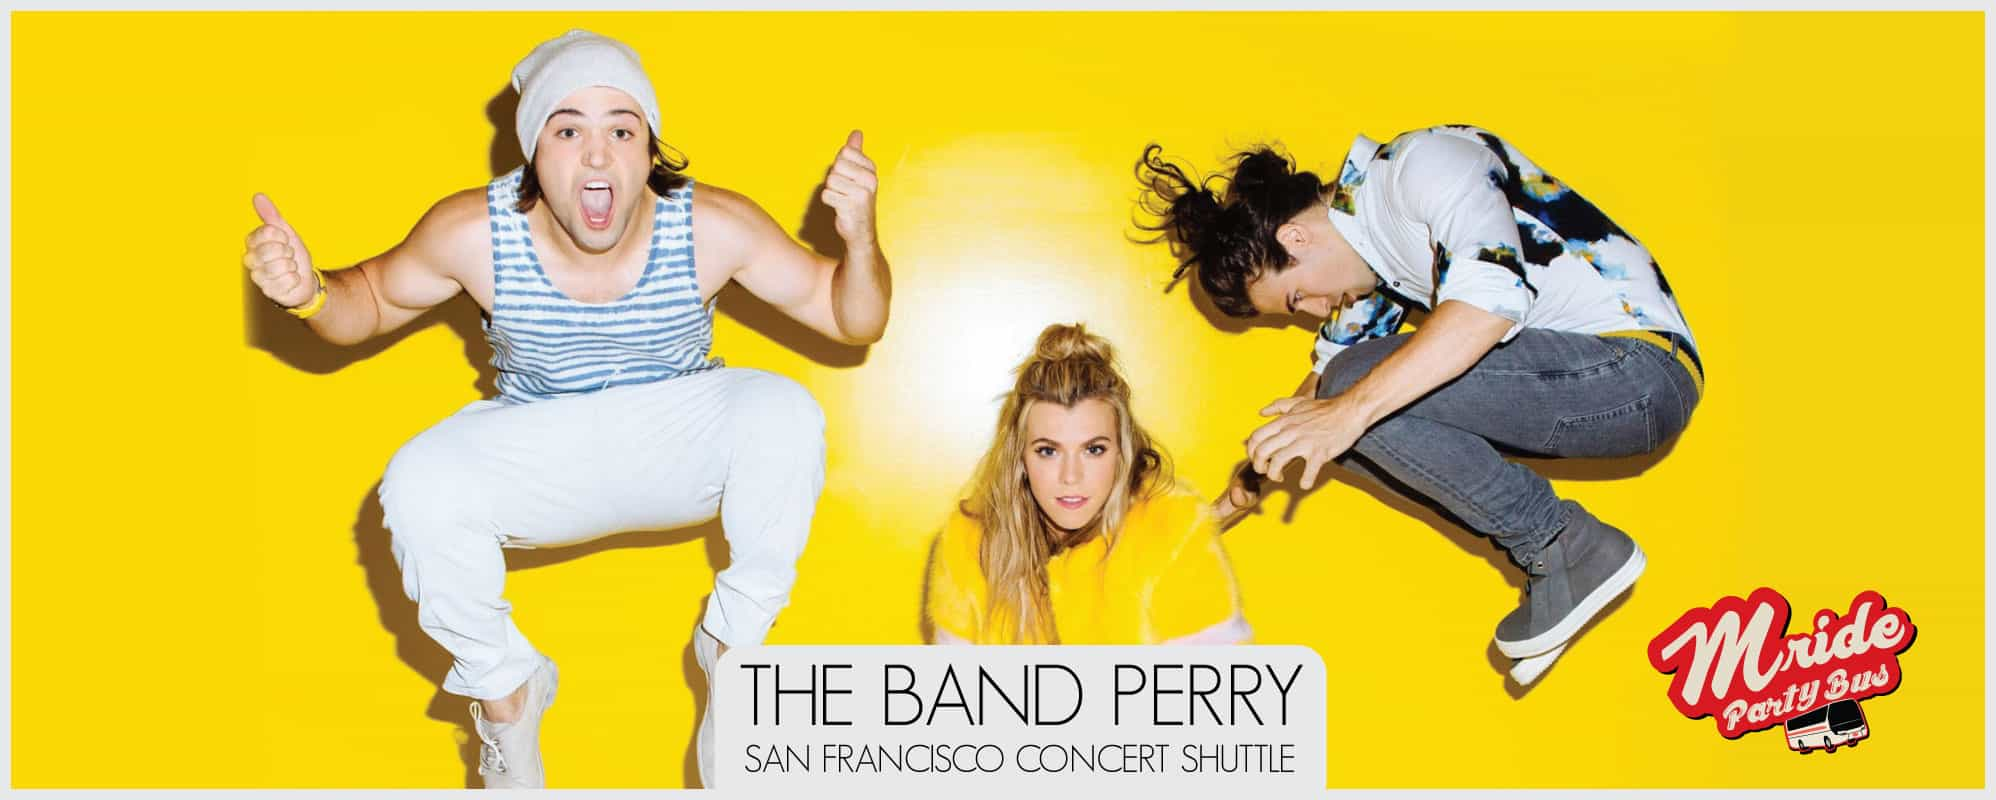 San Francisco Party Bus – The Band Perry